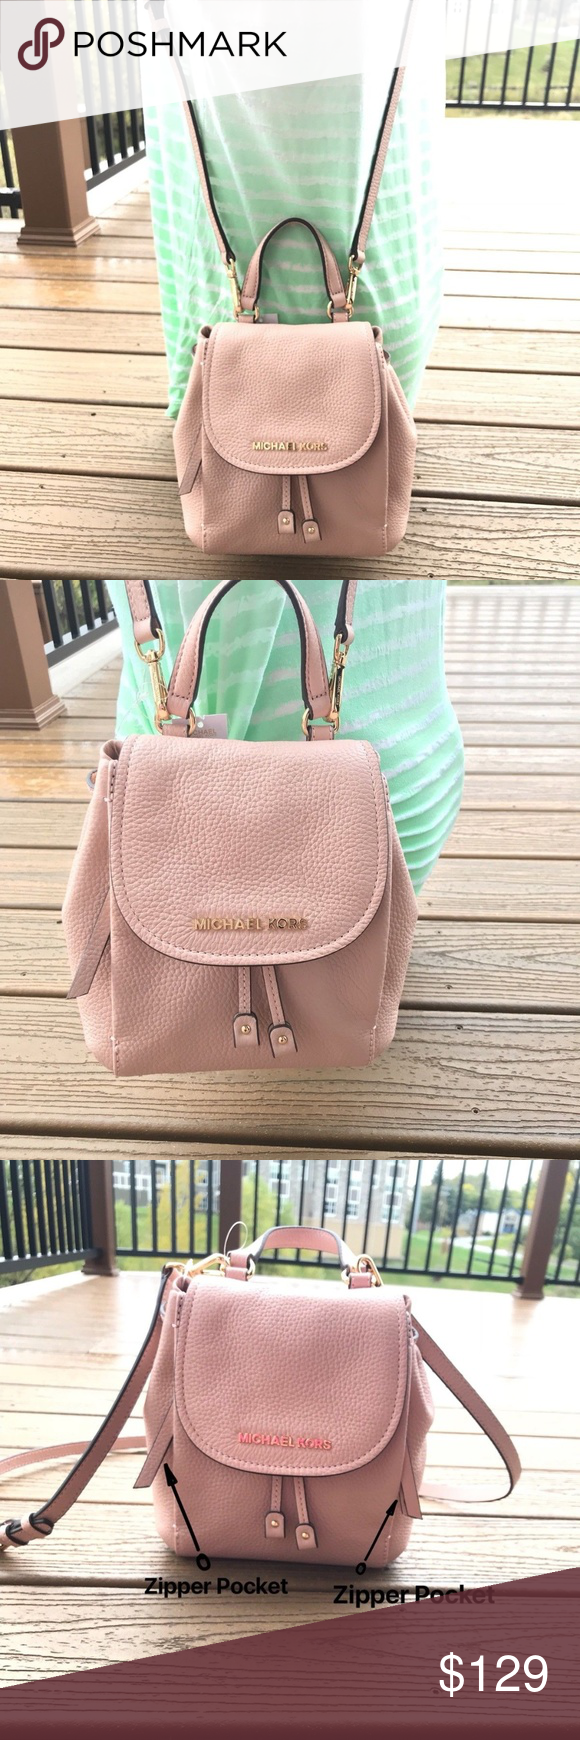 d2251cb1c36b07 Michael Kors Mini Riley Small Crossbody Rose Pink 100% Authentic Purchased  directly from Michael Kors